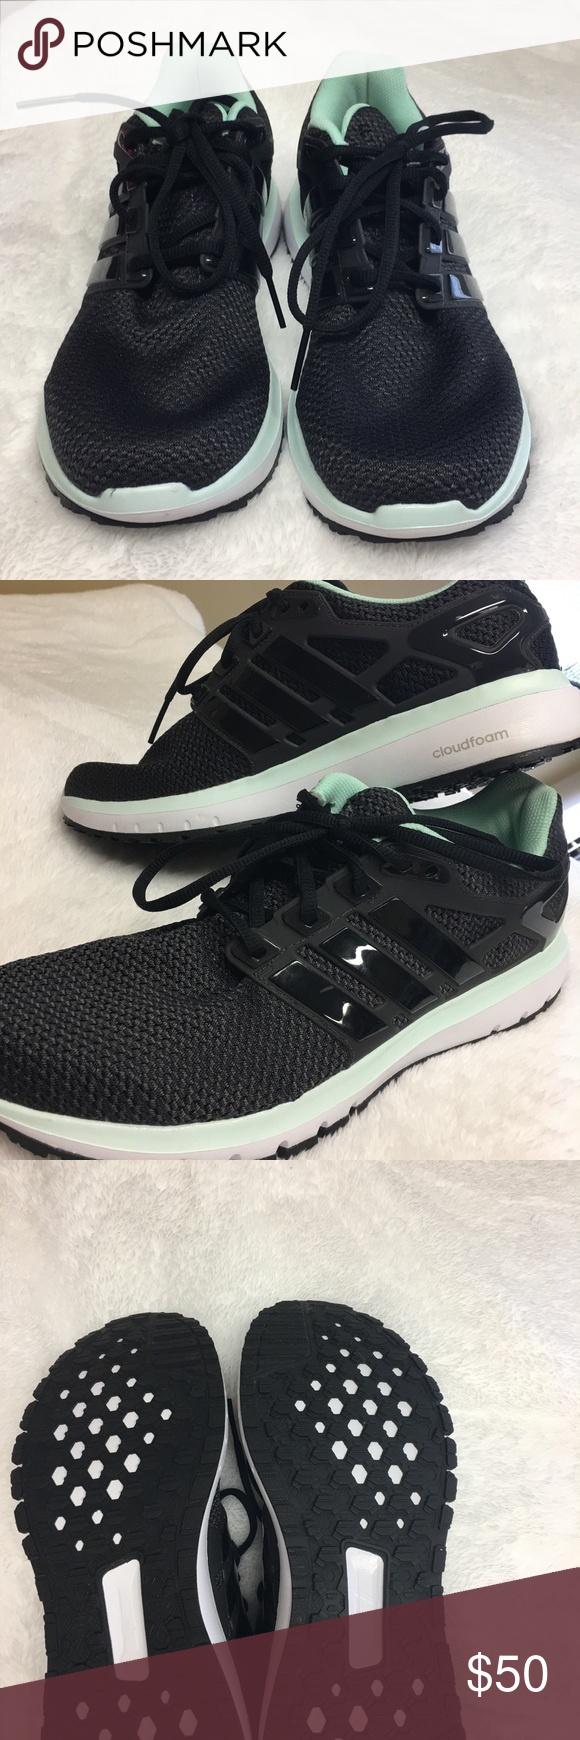 save off 8ee76 838a0 BRAND NEW adidas Cloudfoam Ortholite Sneakers Worn maybe 3-4 times adidas  cloudfoam running shoes